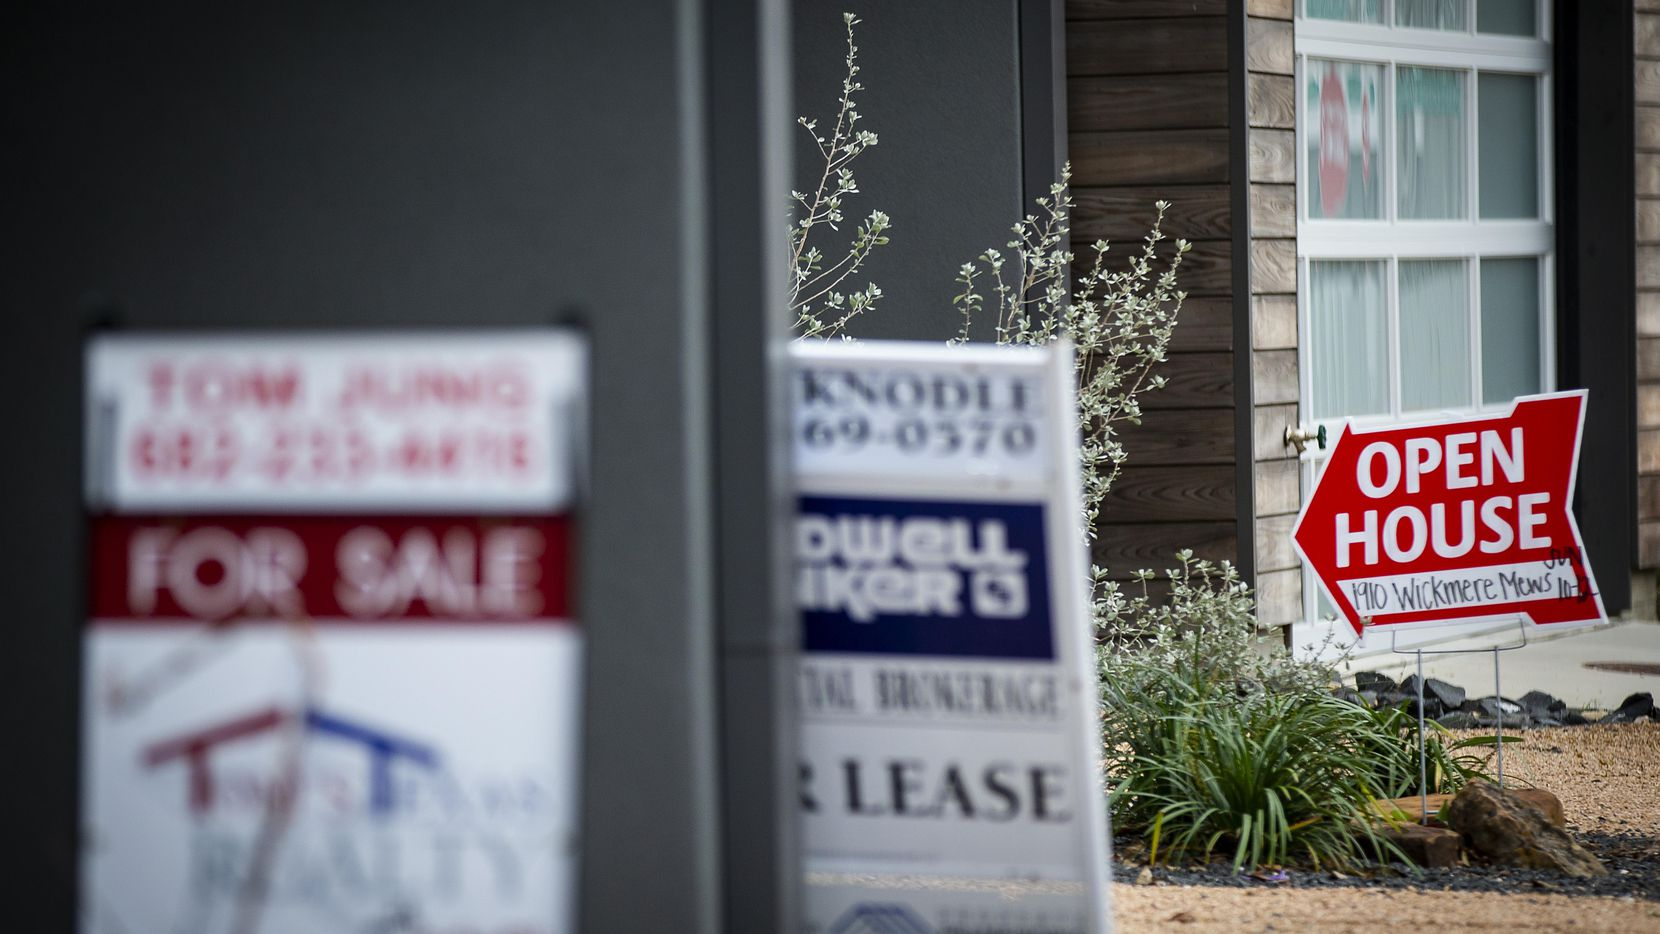 Dallas-area home values have shot up by almost 70% since the worst of the Great Recession.